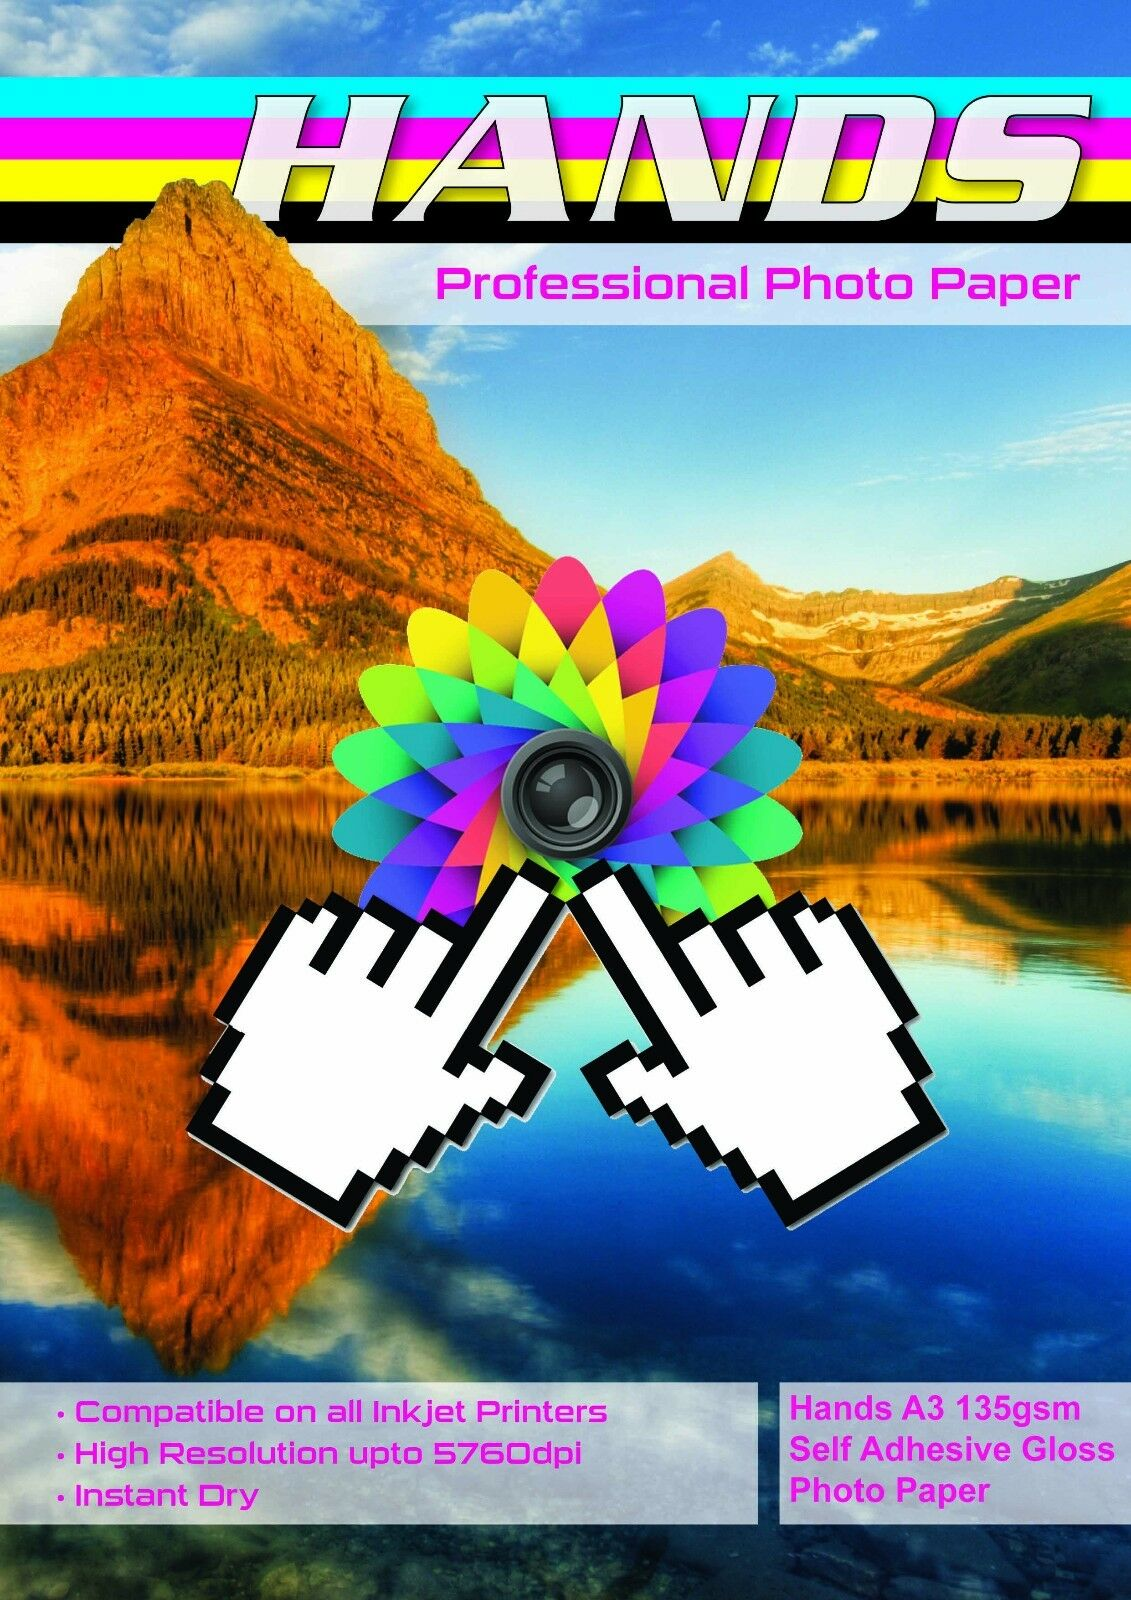 Hands A3 135gsm Self Adhesive Gloss Photo Paper (100, 200 Sheets)